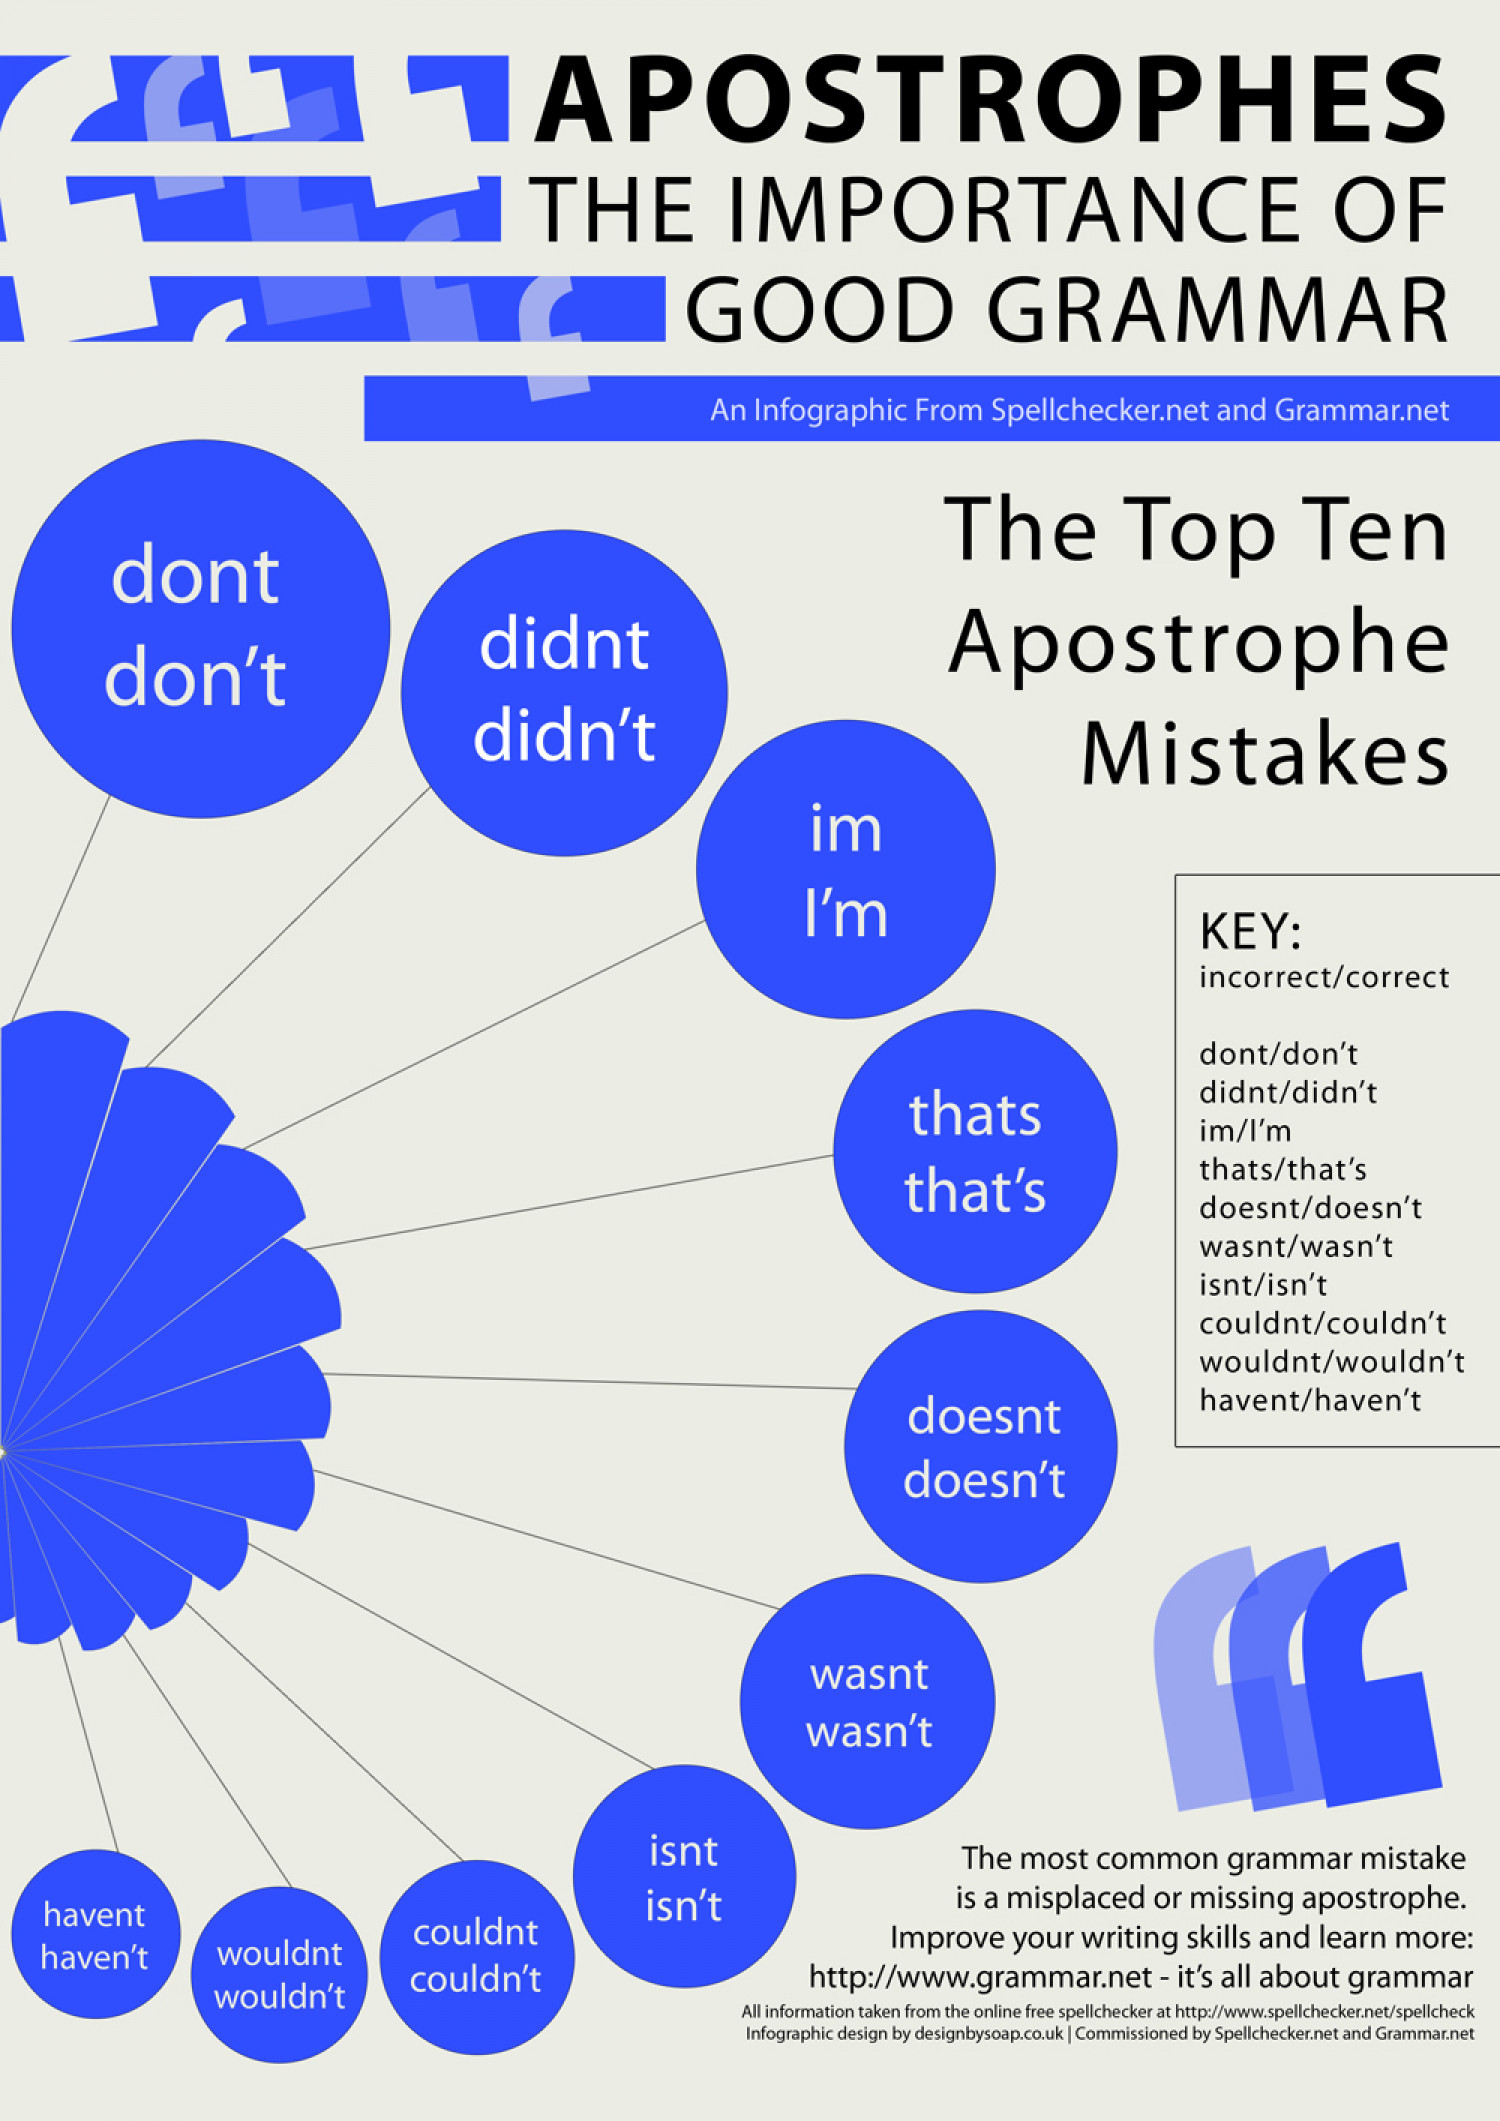 Apostrophes: The Importance of Good Grammar Infographic